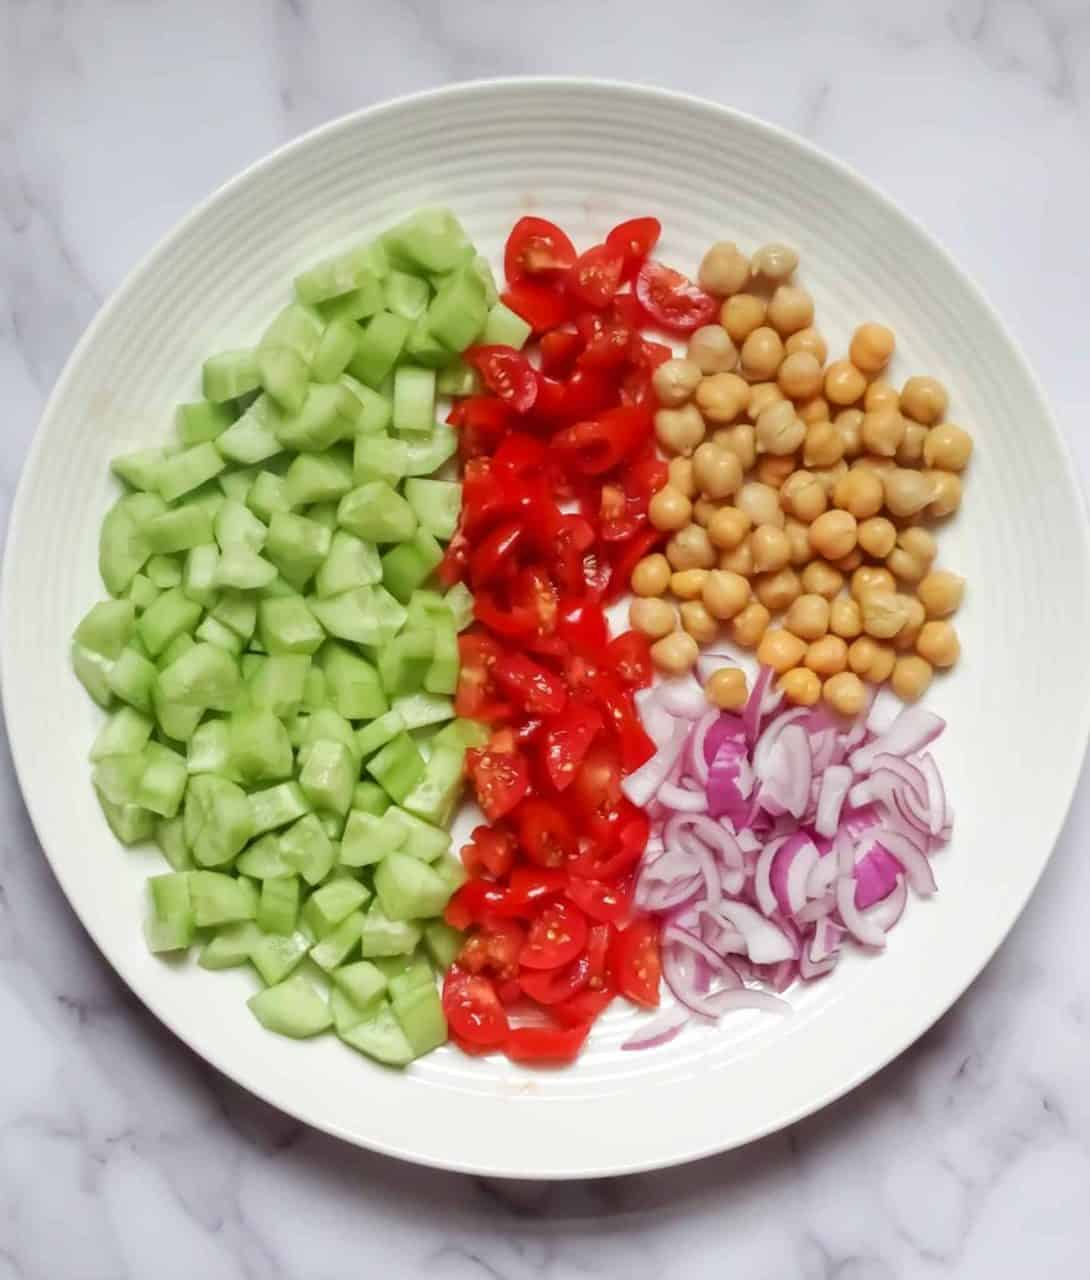 chickpeas, onions, tomatoes, and cucumber on a white plate